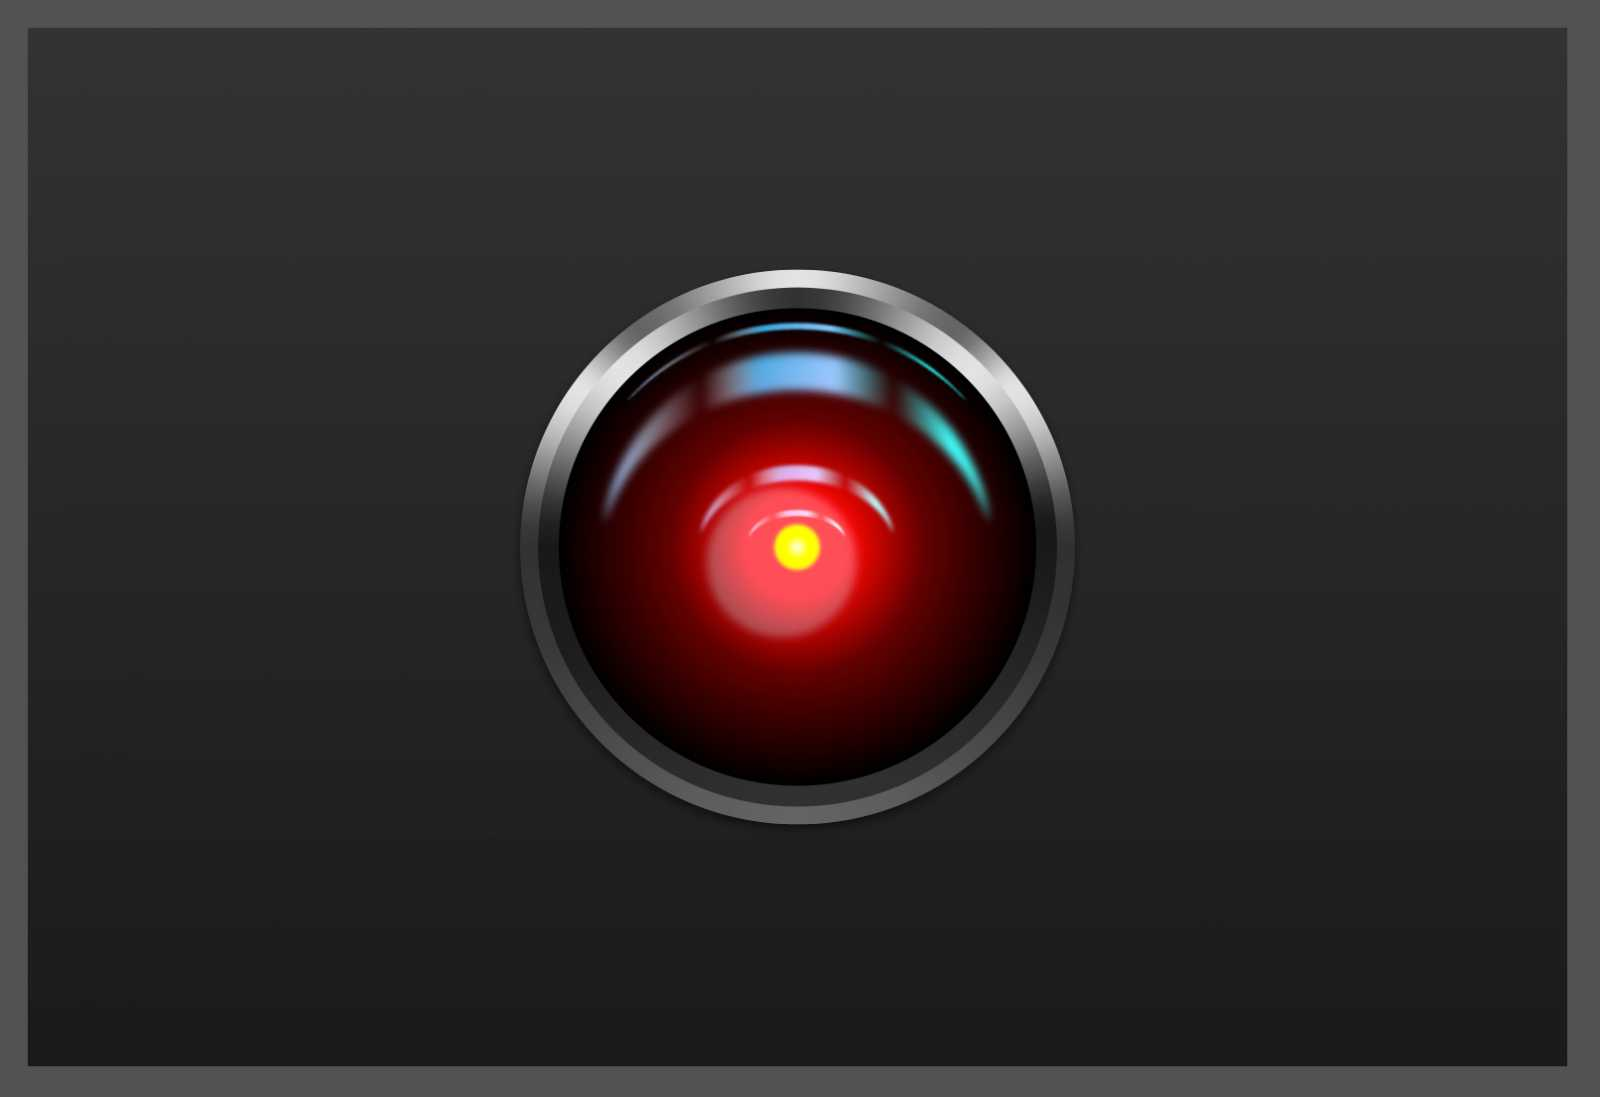 Drawing HAL 9000 from 2001: A Space Odyssey in Illustrator (in 2017)